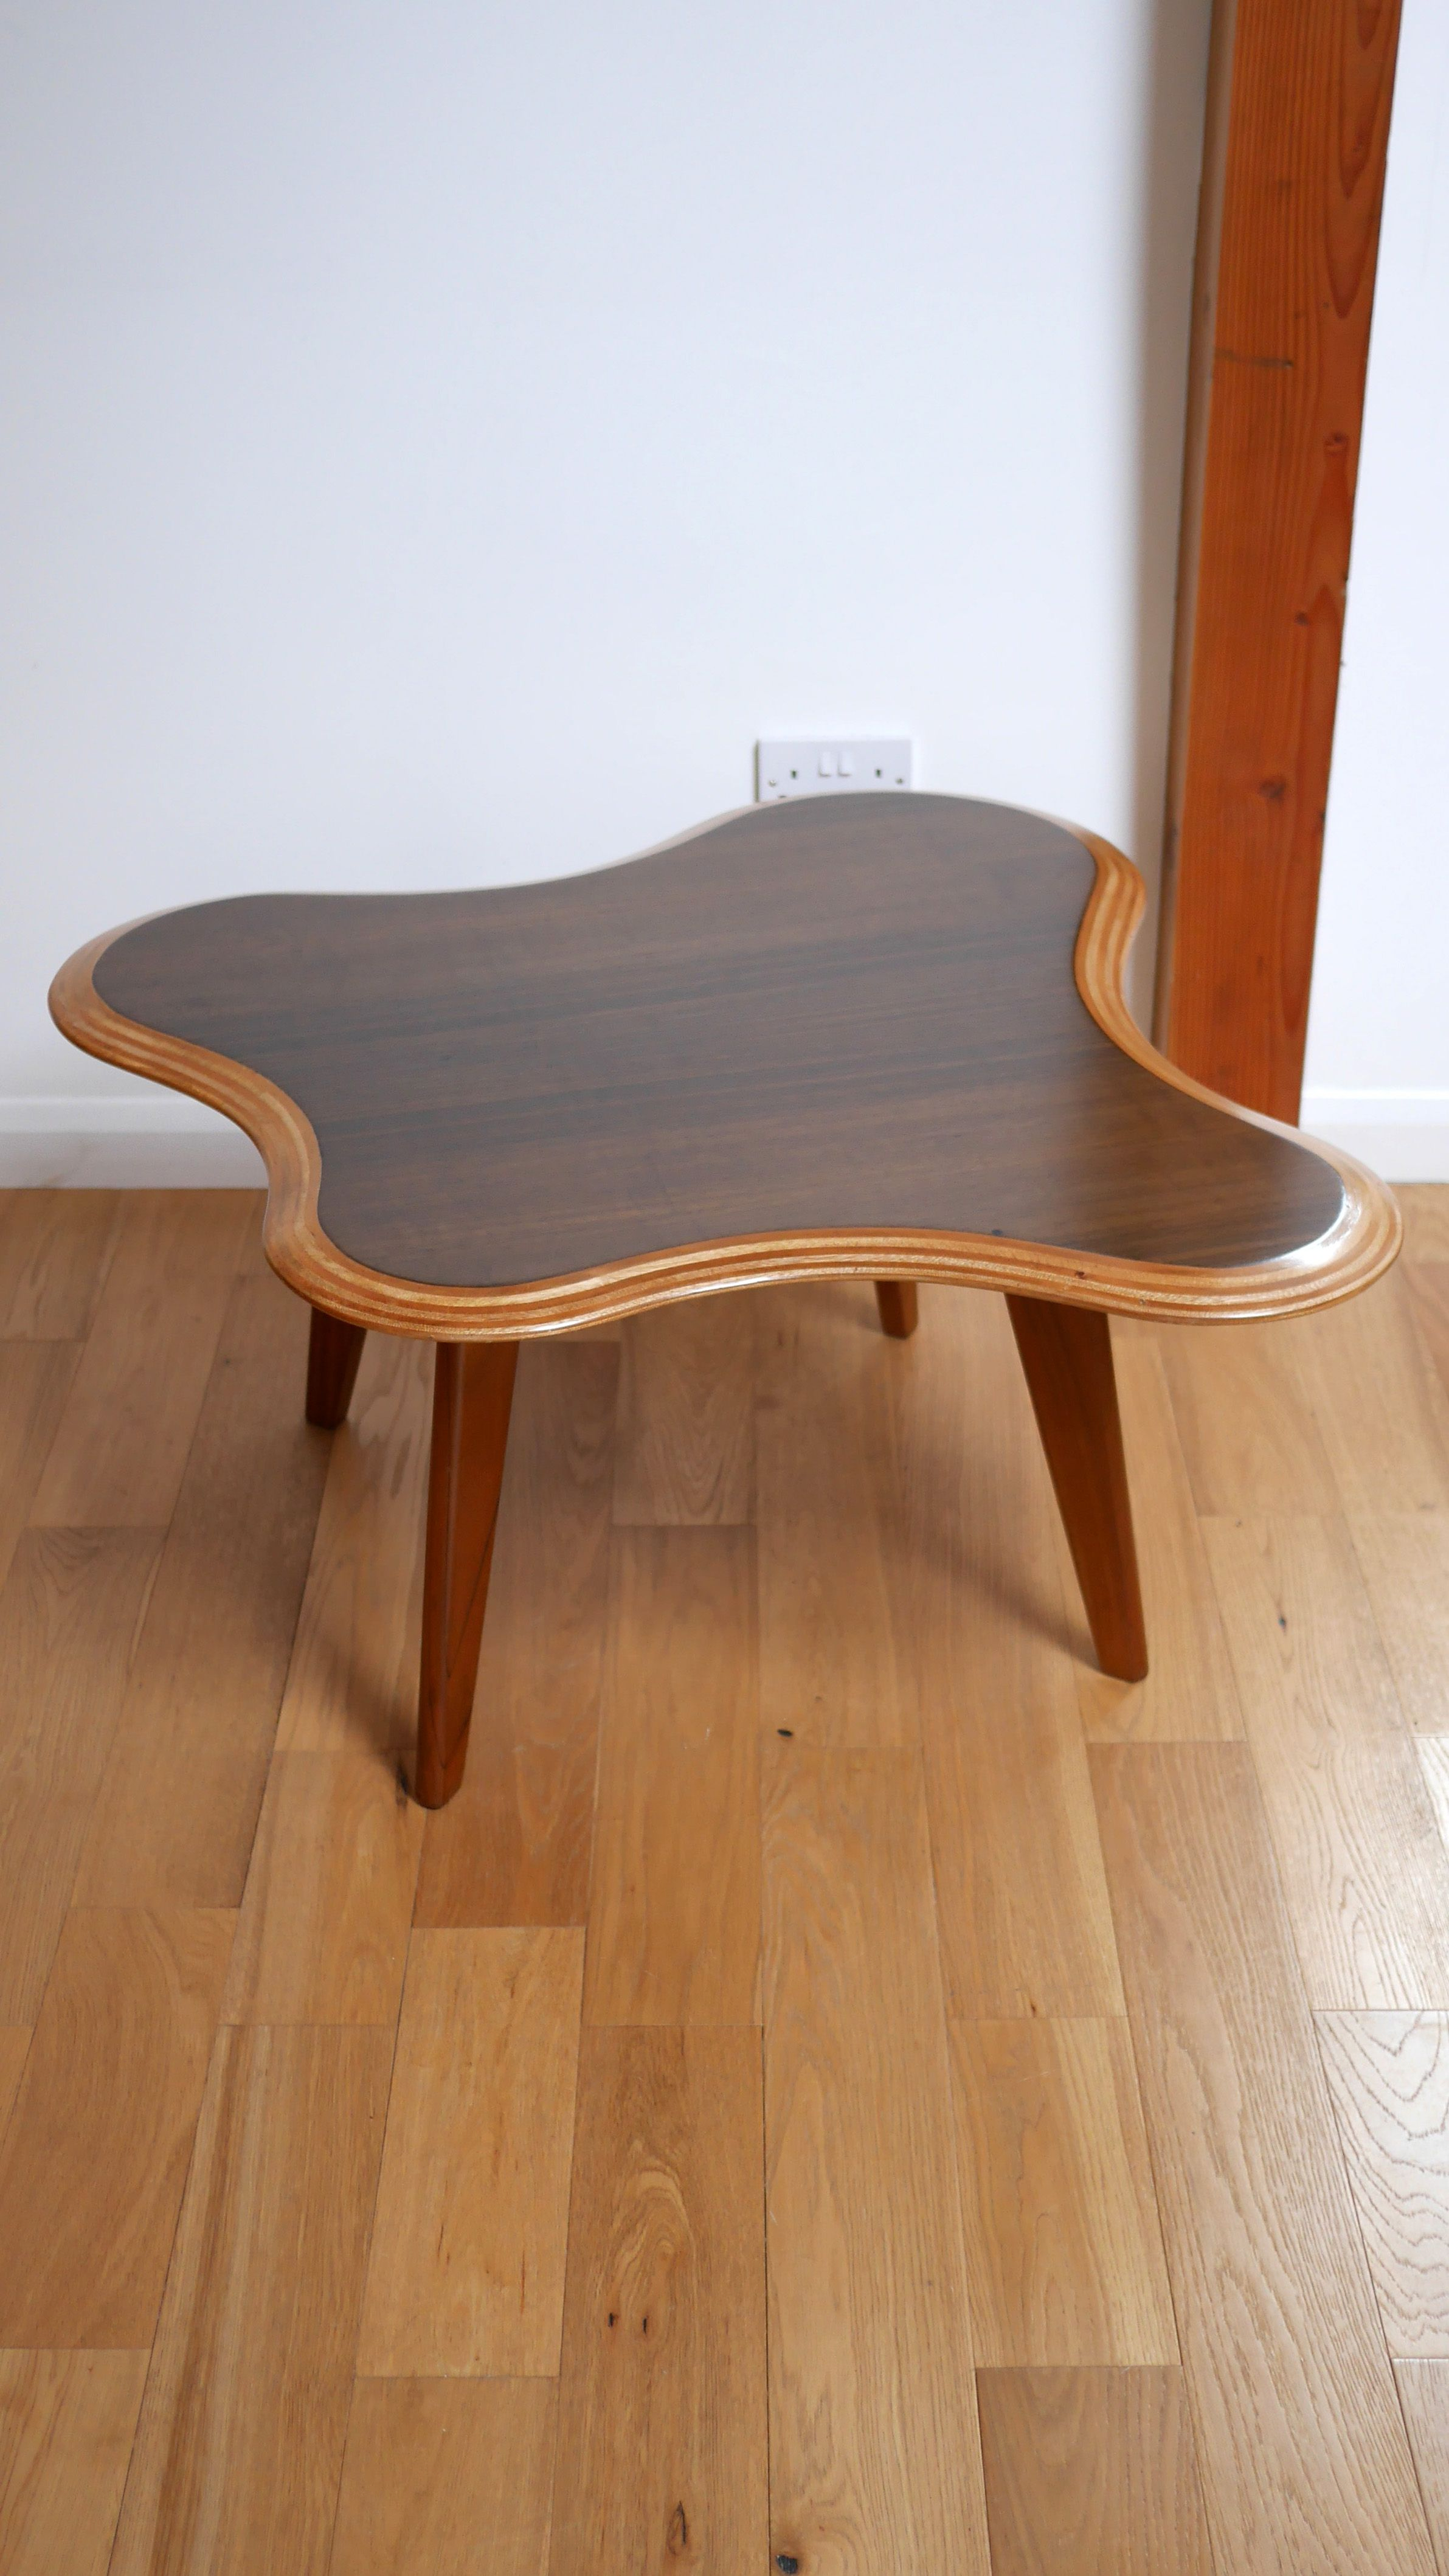 Laminated walnut and birch cloud coffee table by neil morris 1947